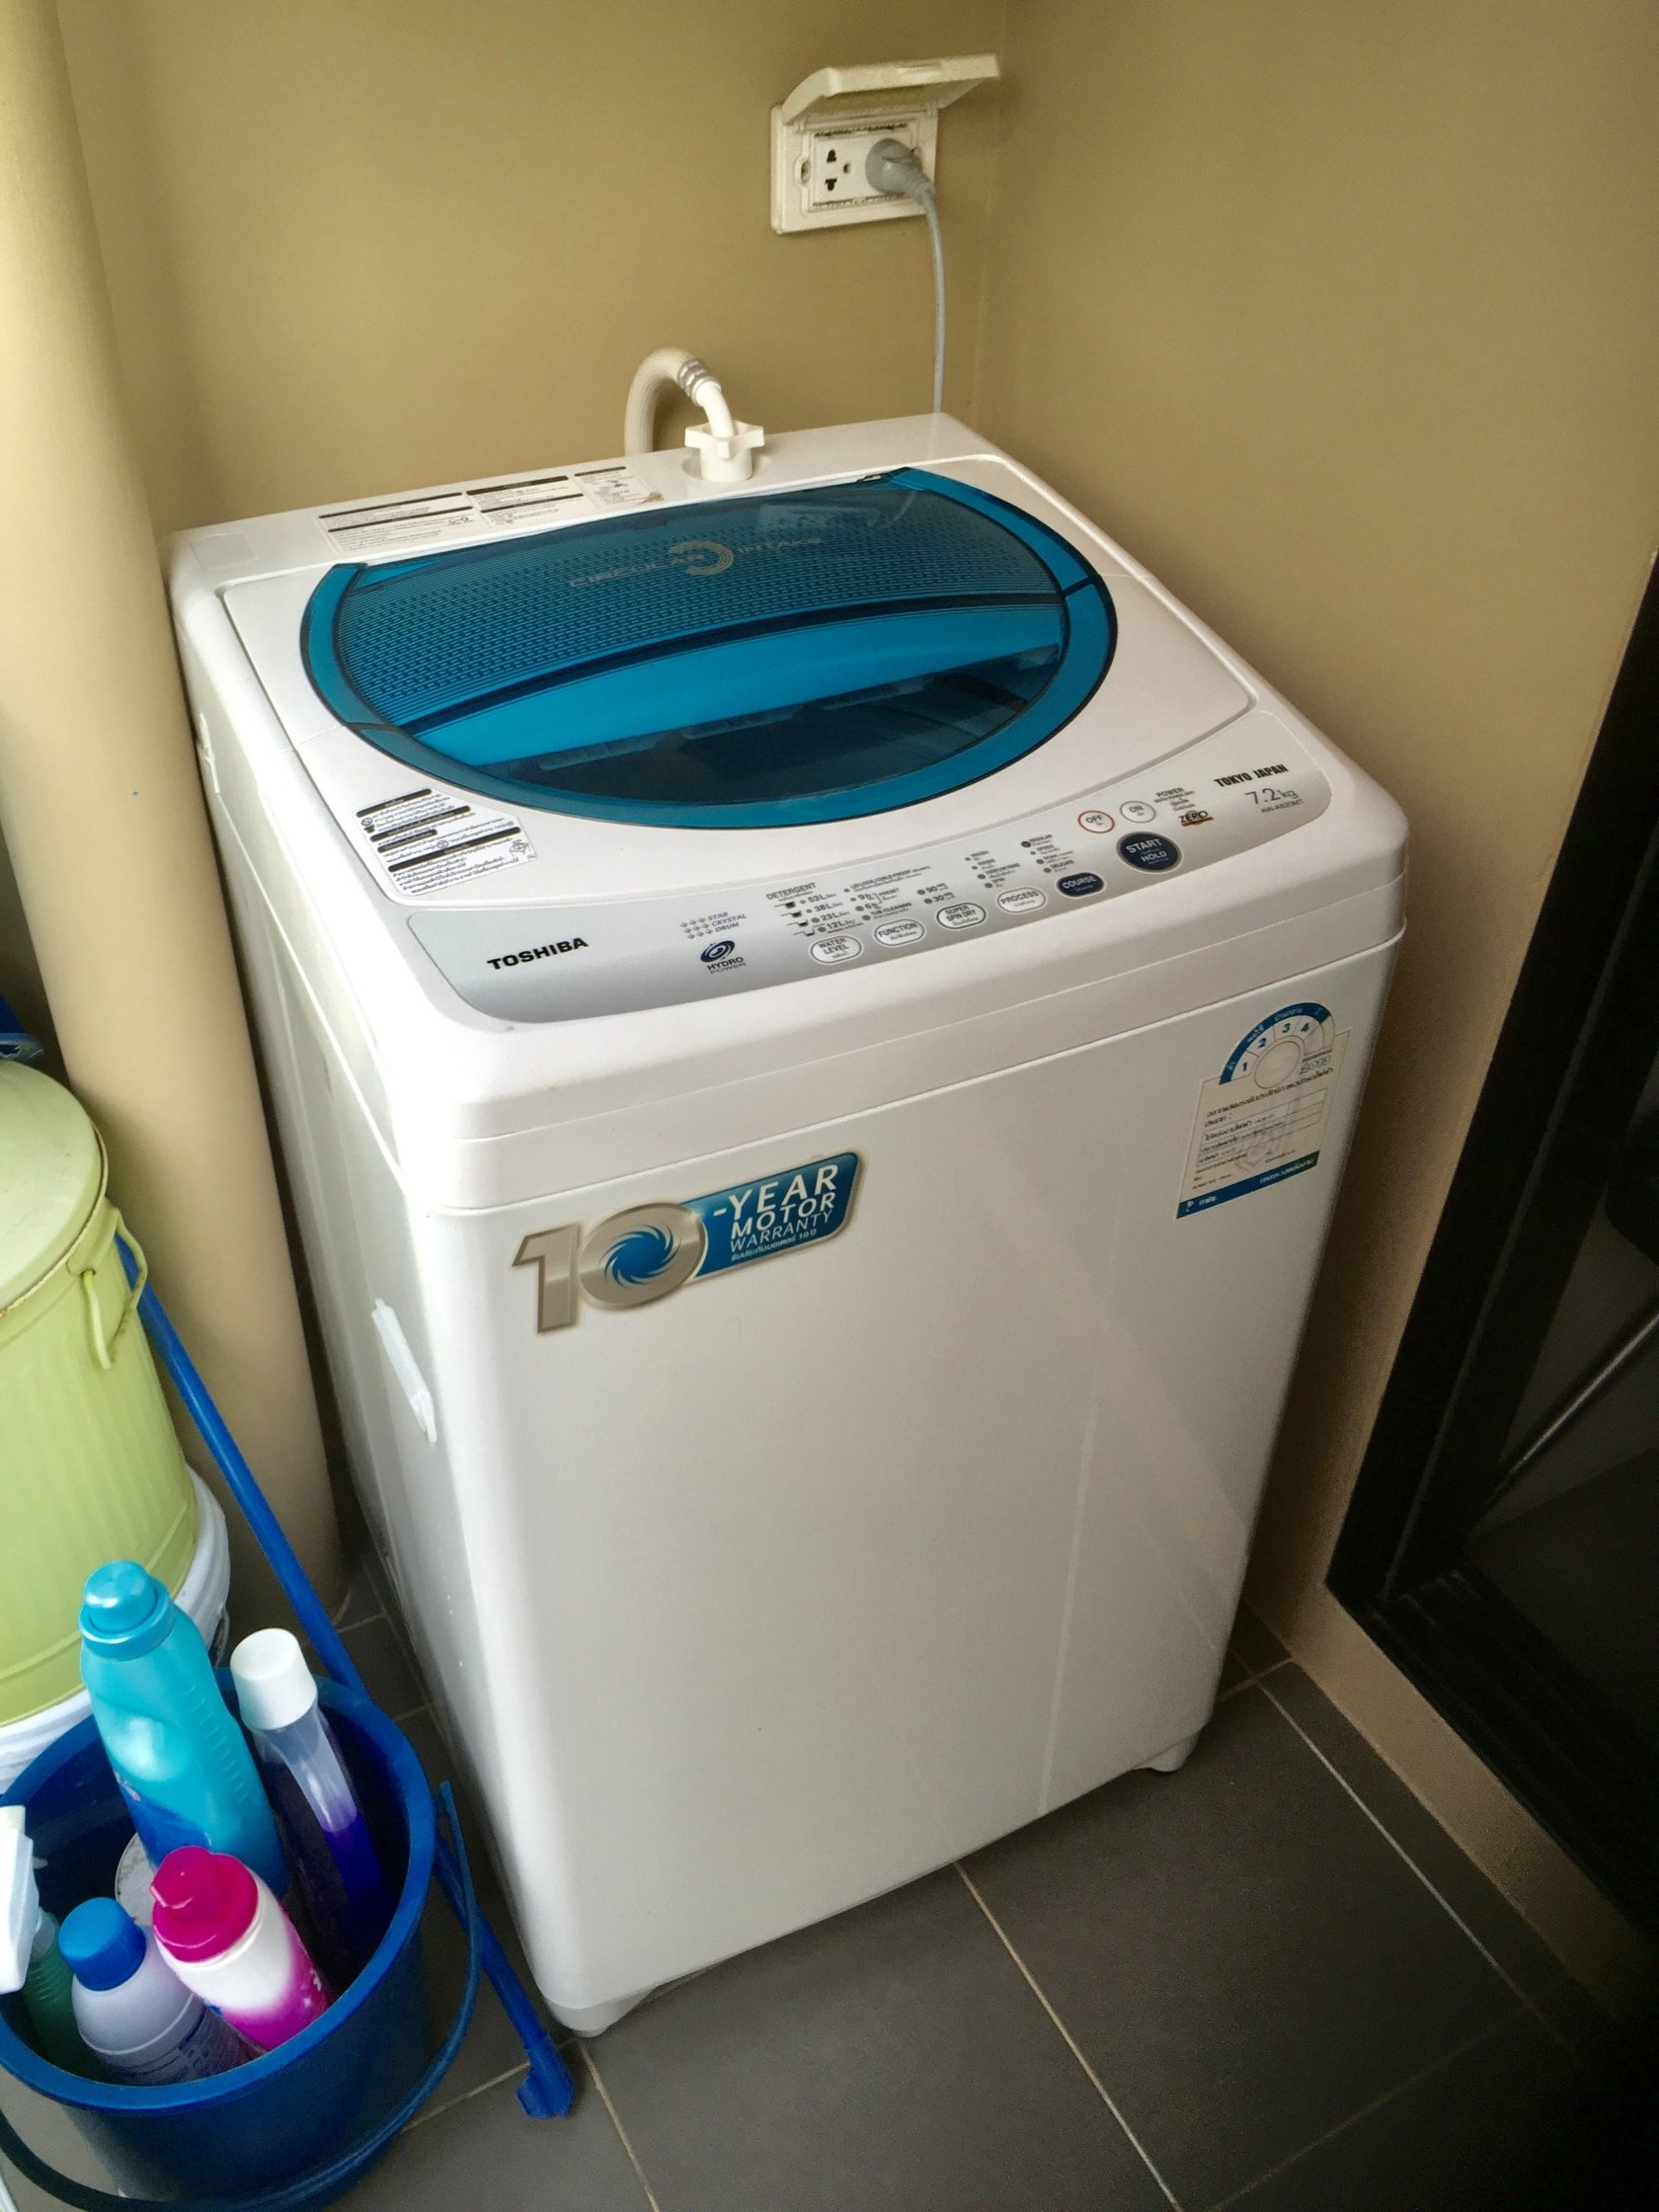 Toshiba Washing Machine